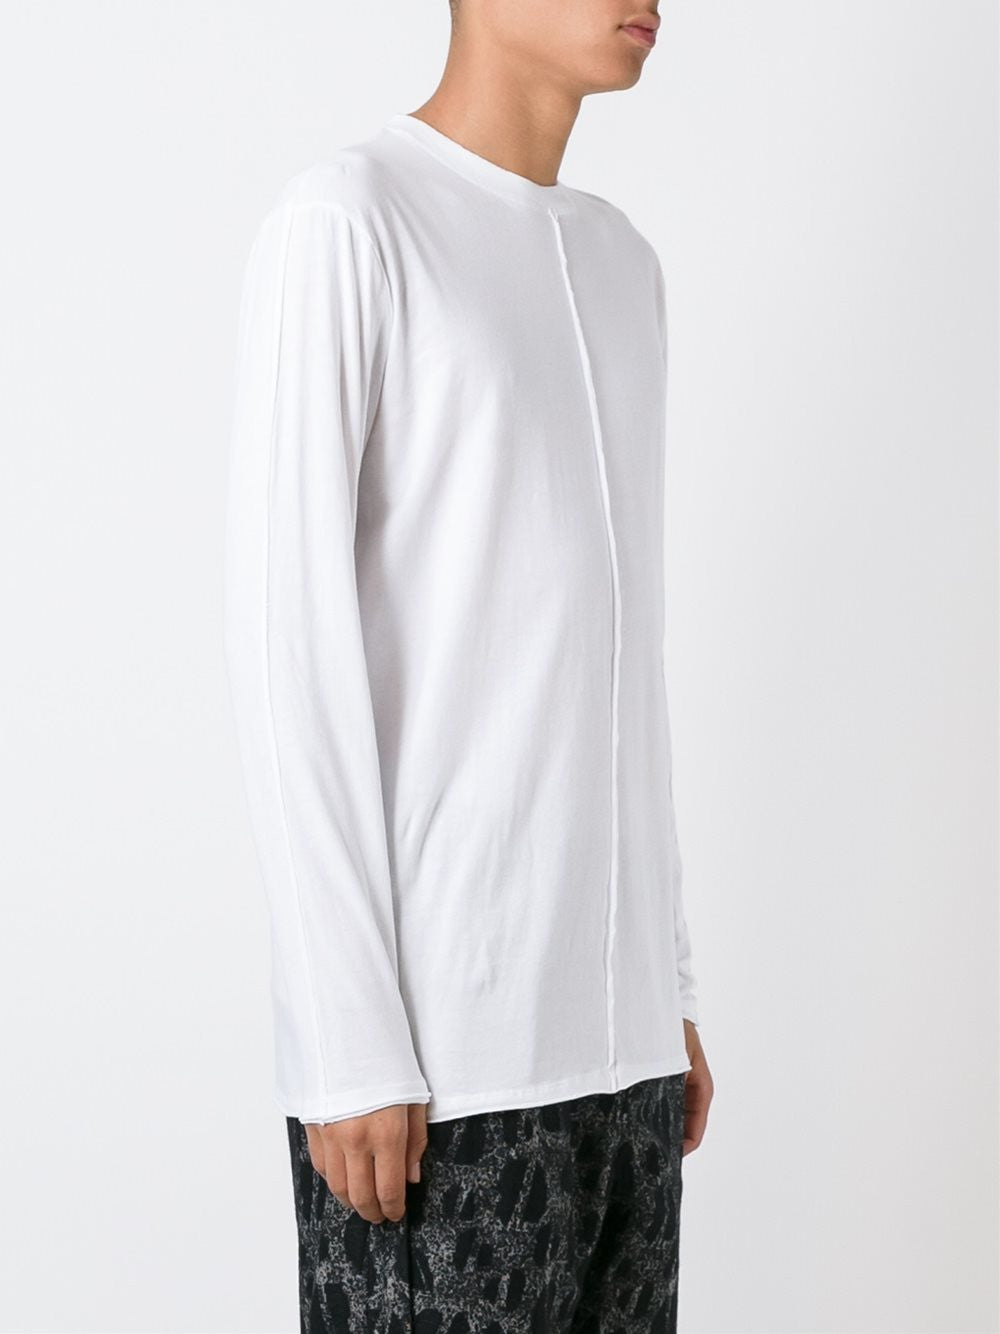 Cotton 'TELLER' Top | AF1M0061-J1512 TELLER